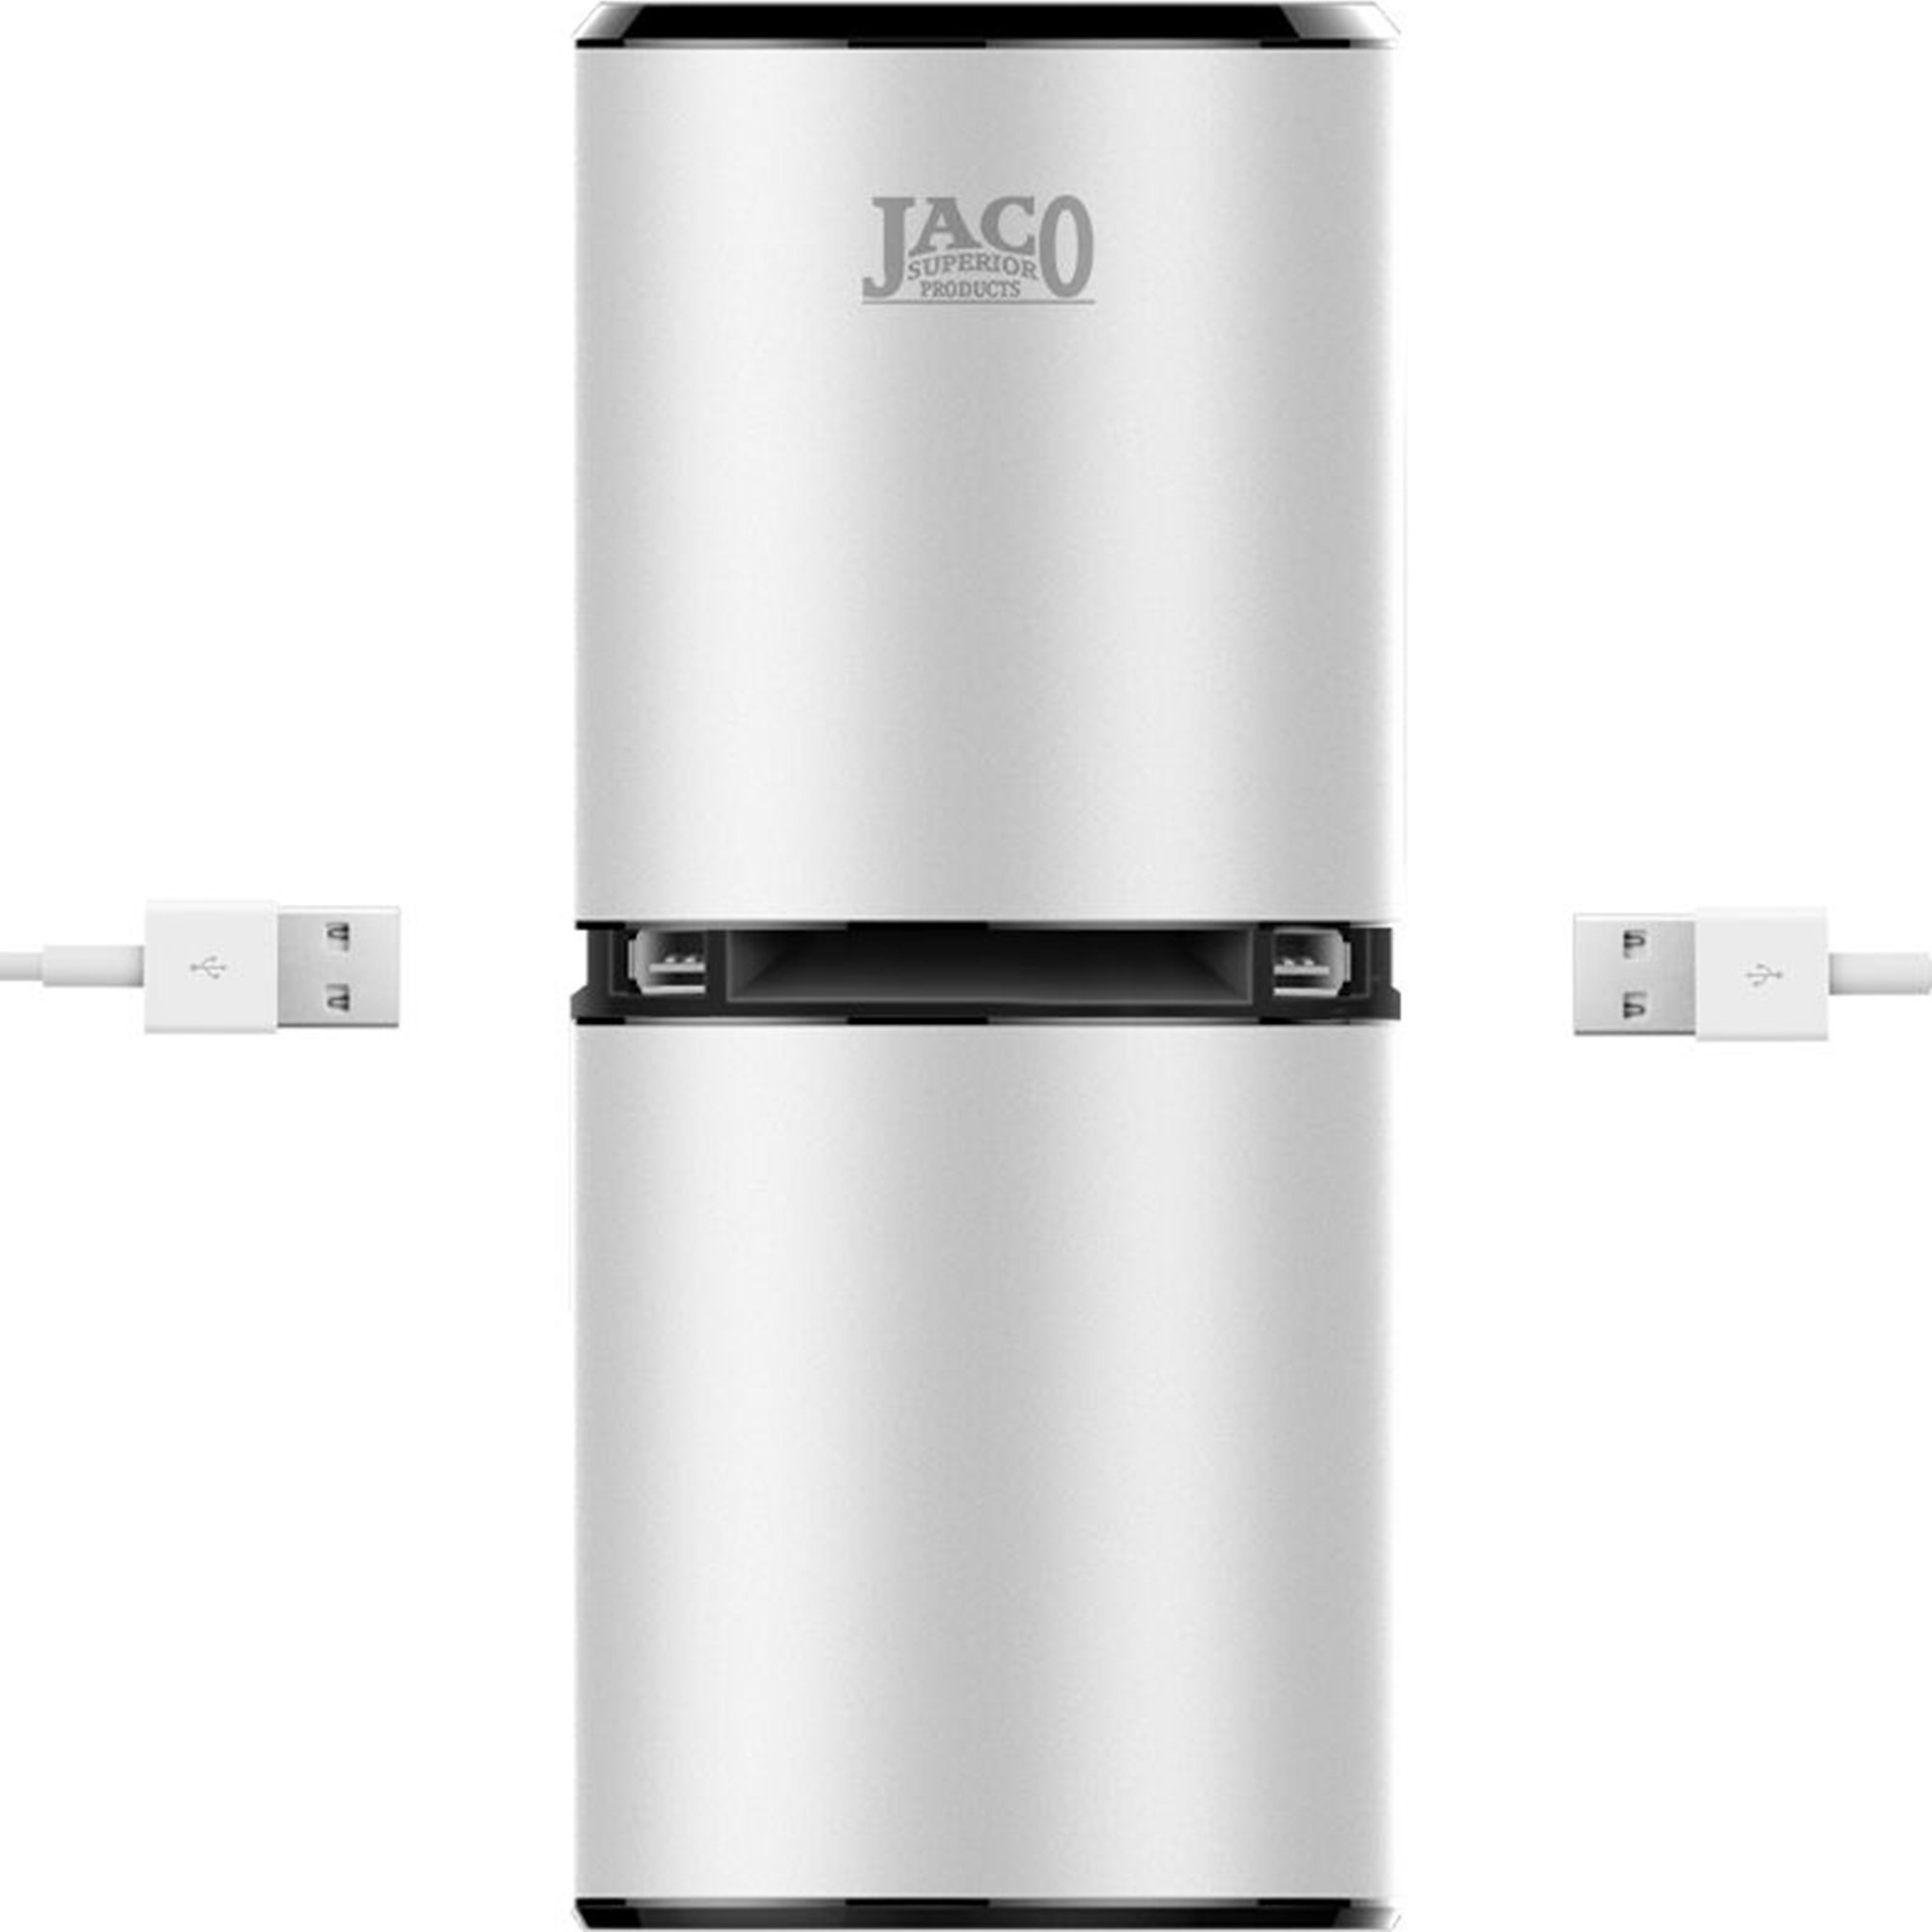 JACO PurePro Ionizer - Portable Ionic Air Purifier with Dual USB Ports